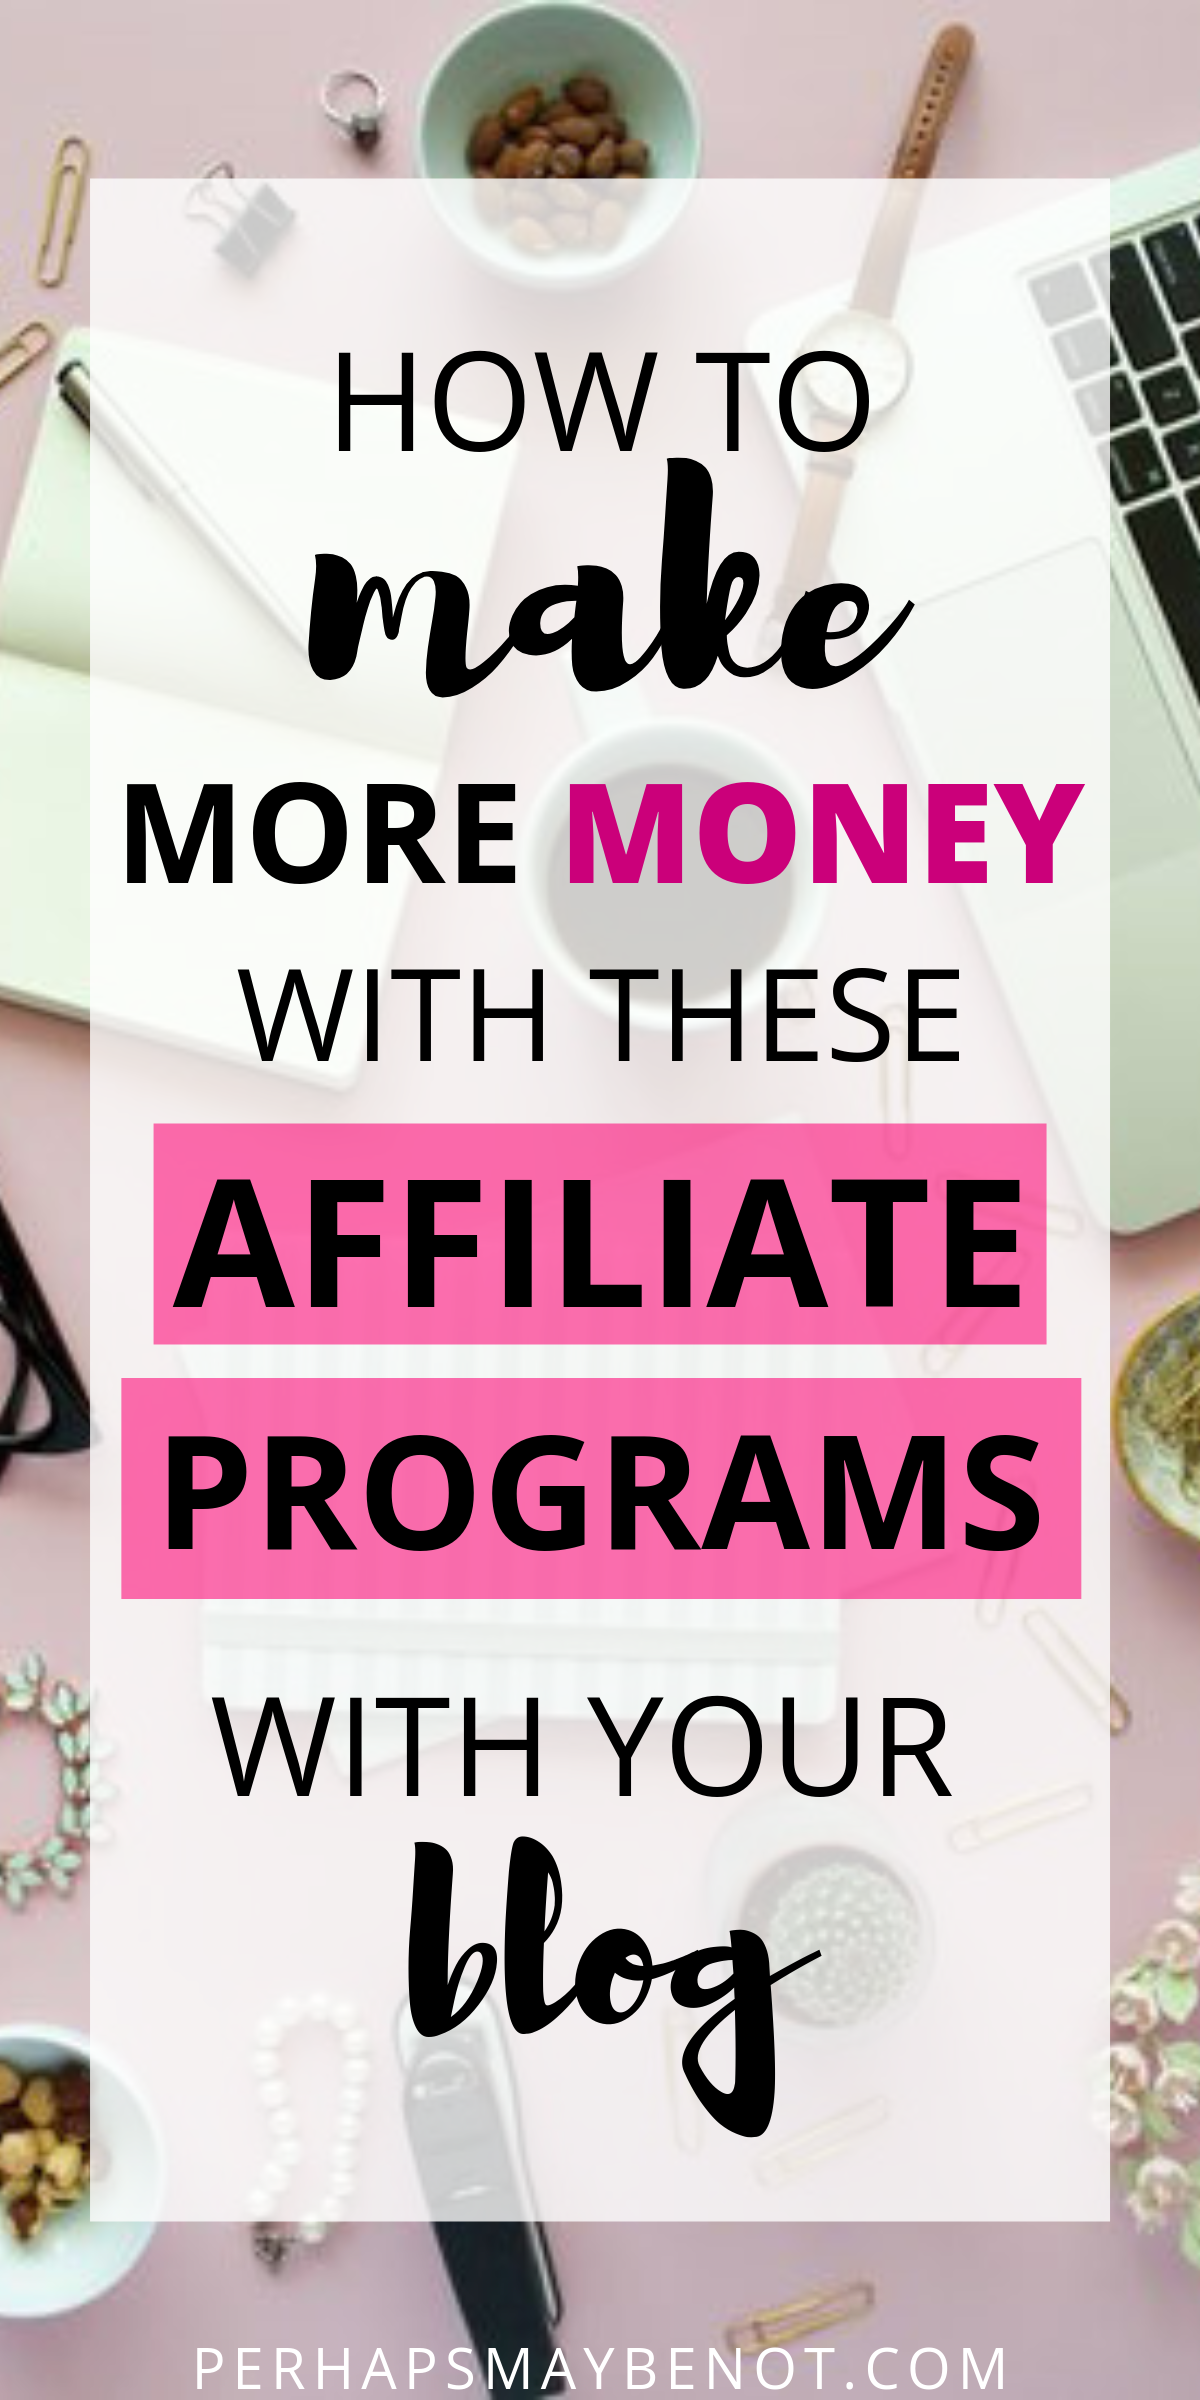 50+ Best Affiliate Programs to Make Money With in 2019